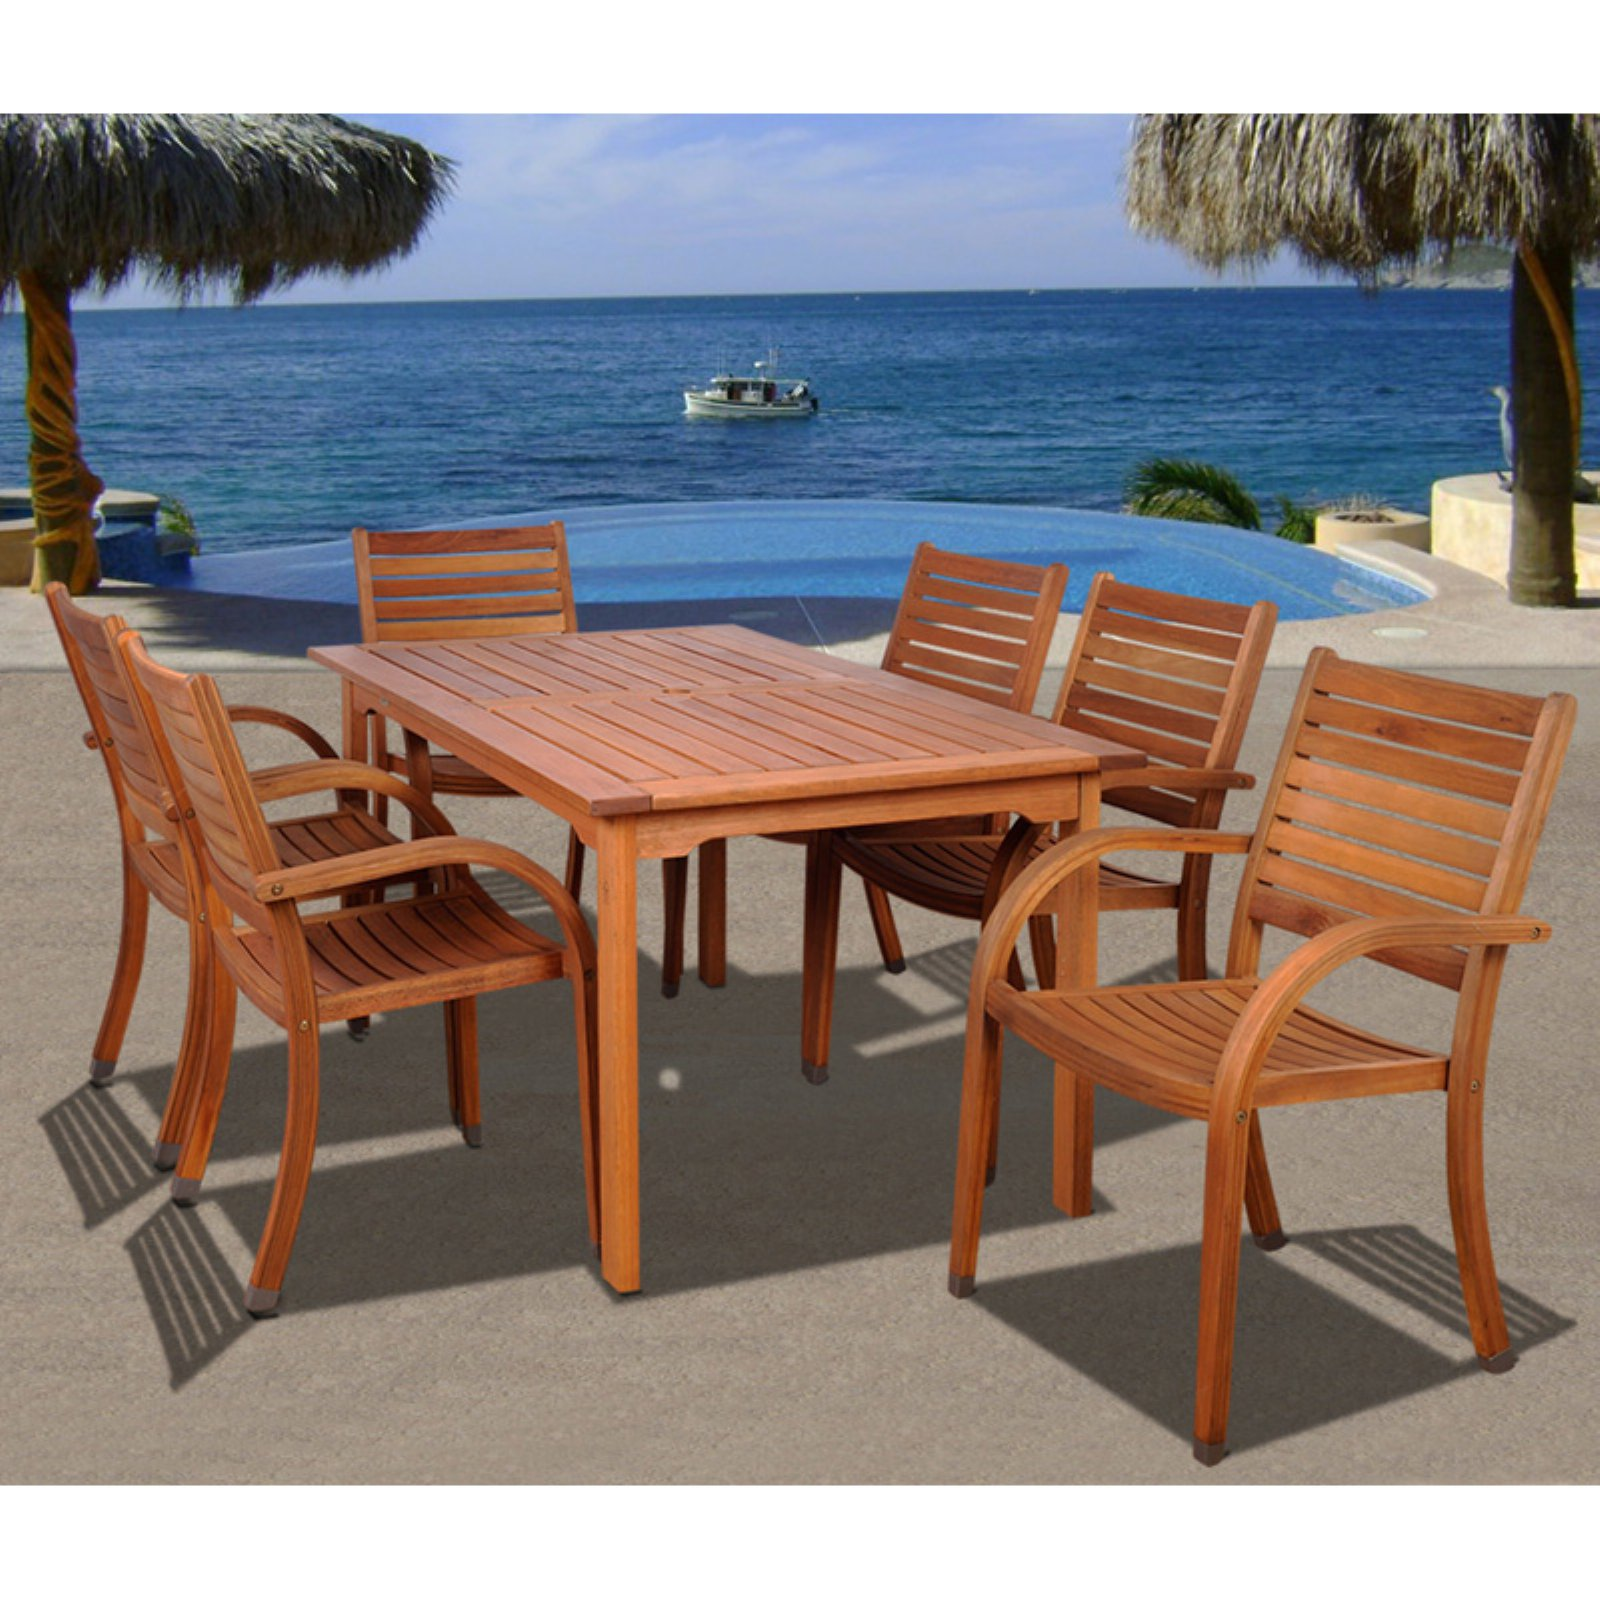 Arizona 7-Piece Eucalyptus Rectangular Patio Dining Set